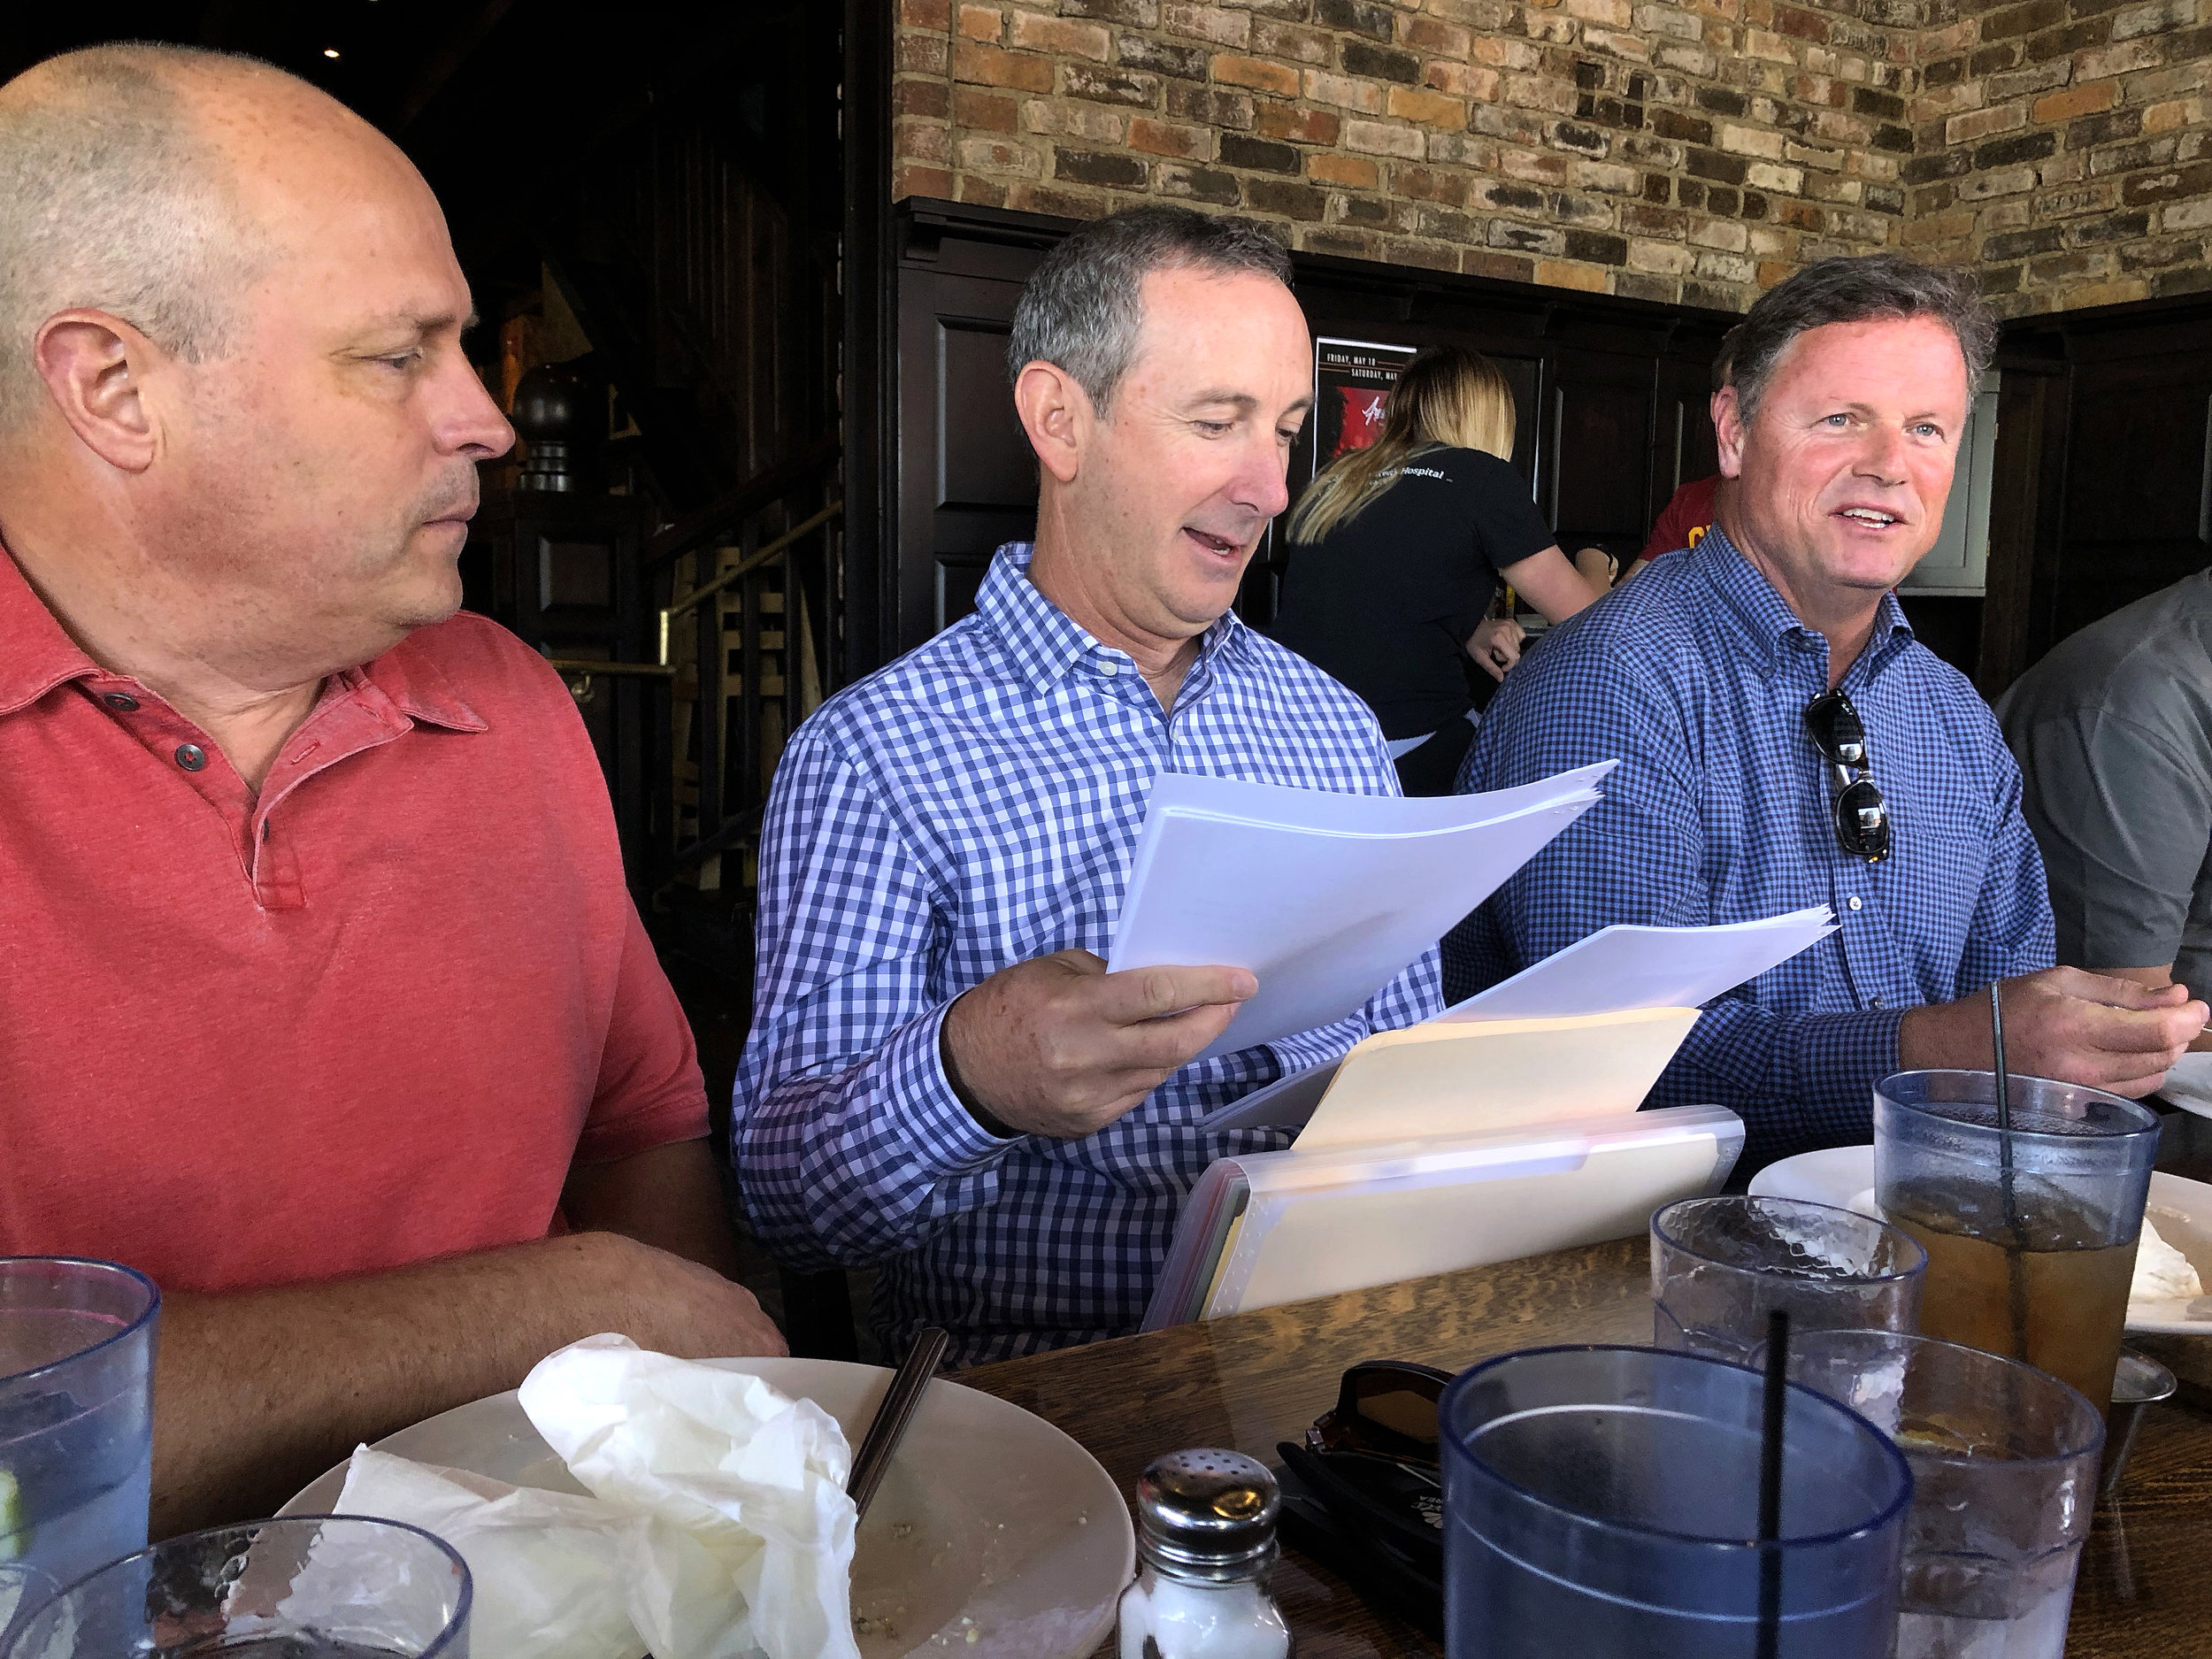 Matt Maiocco (center) sorts through letters from fans while sitting with Kirk Reynolds (left) and Lal Heneghan at lunch in Whitefish, Montana on May 20, 2018 before visiting Dwight Clark in his home.